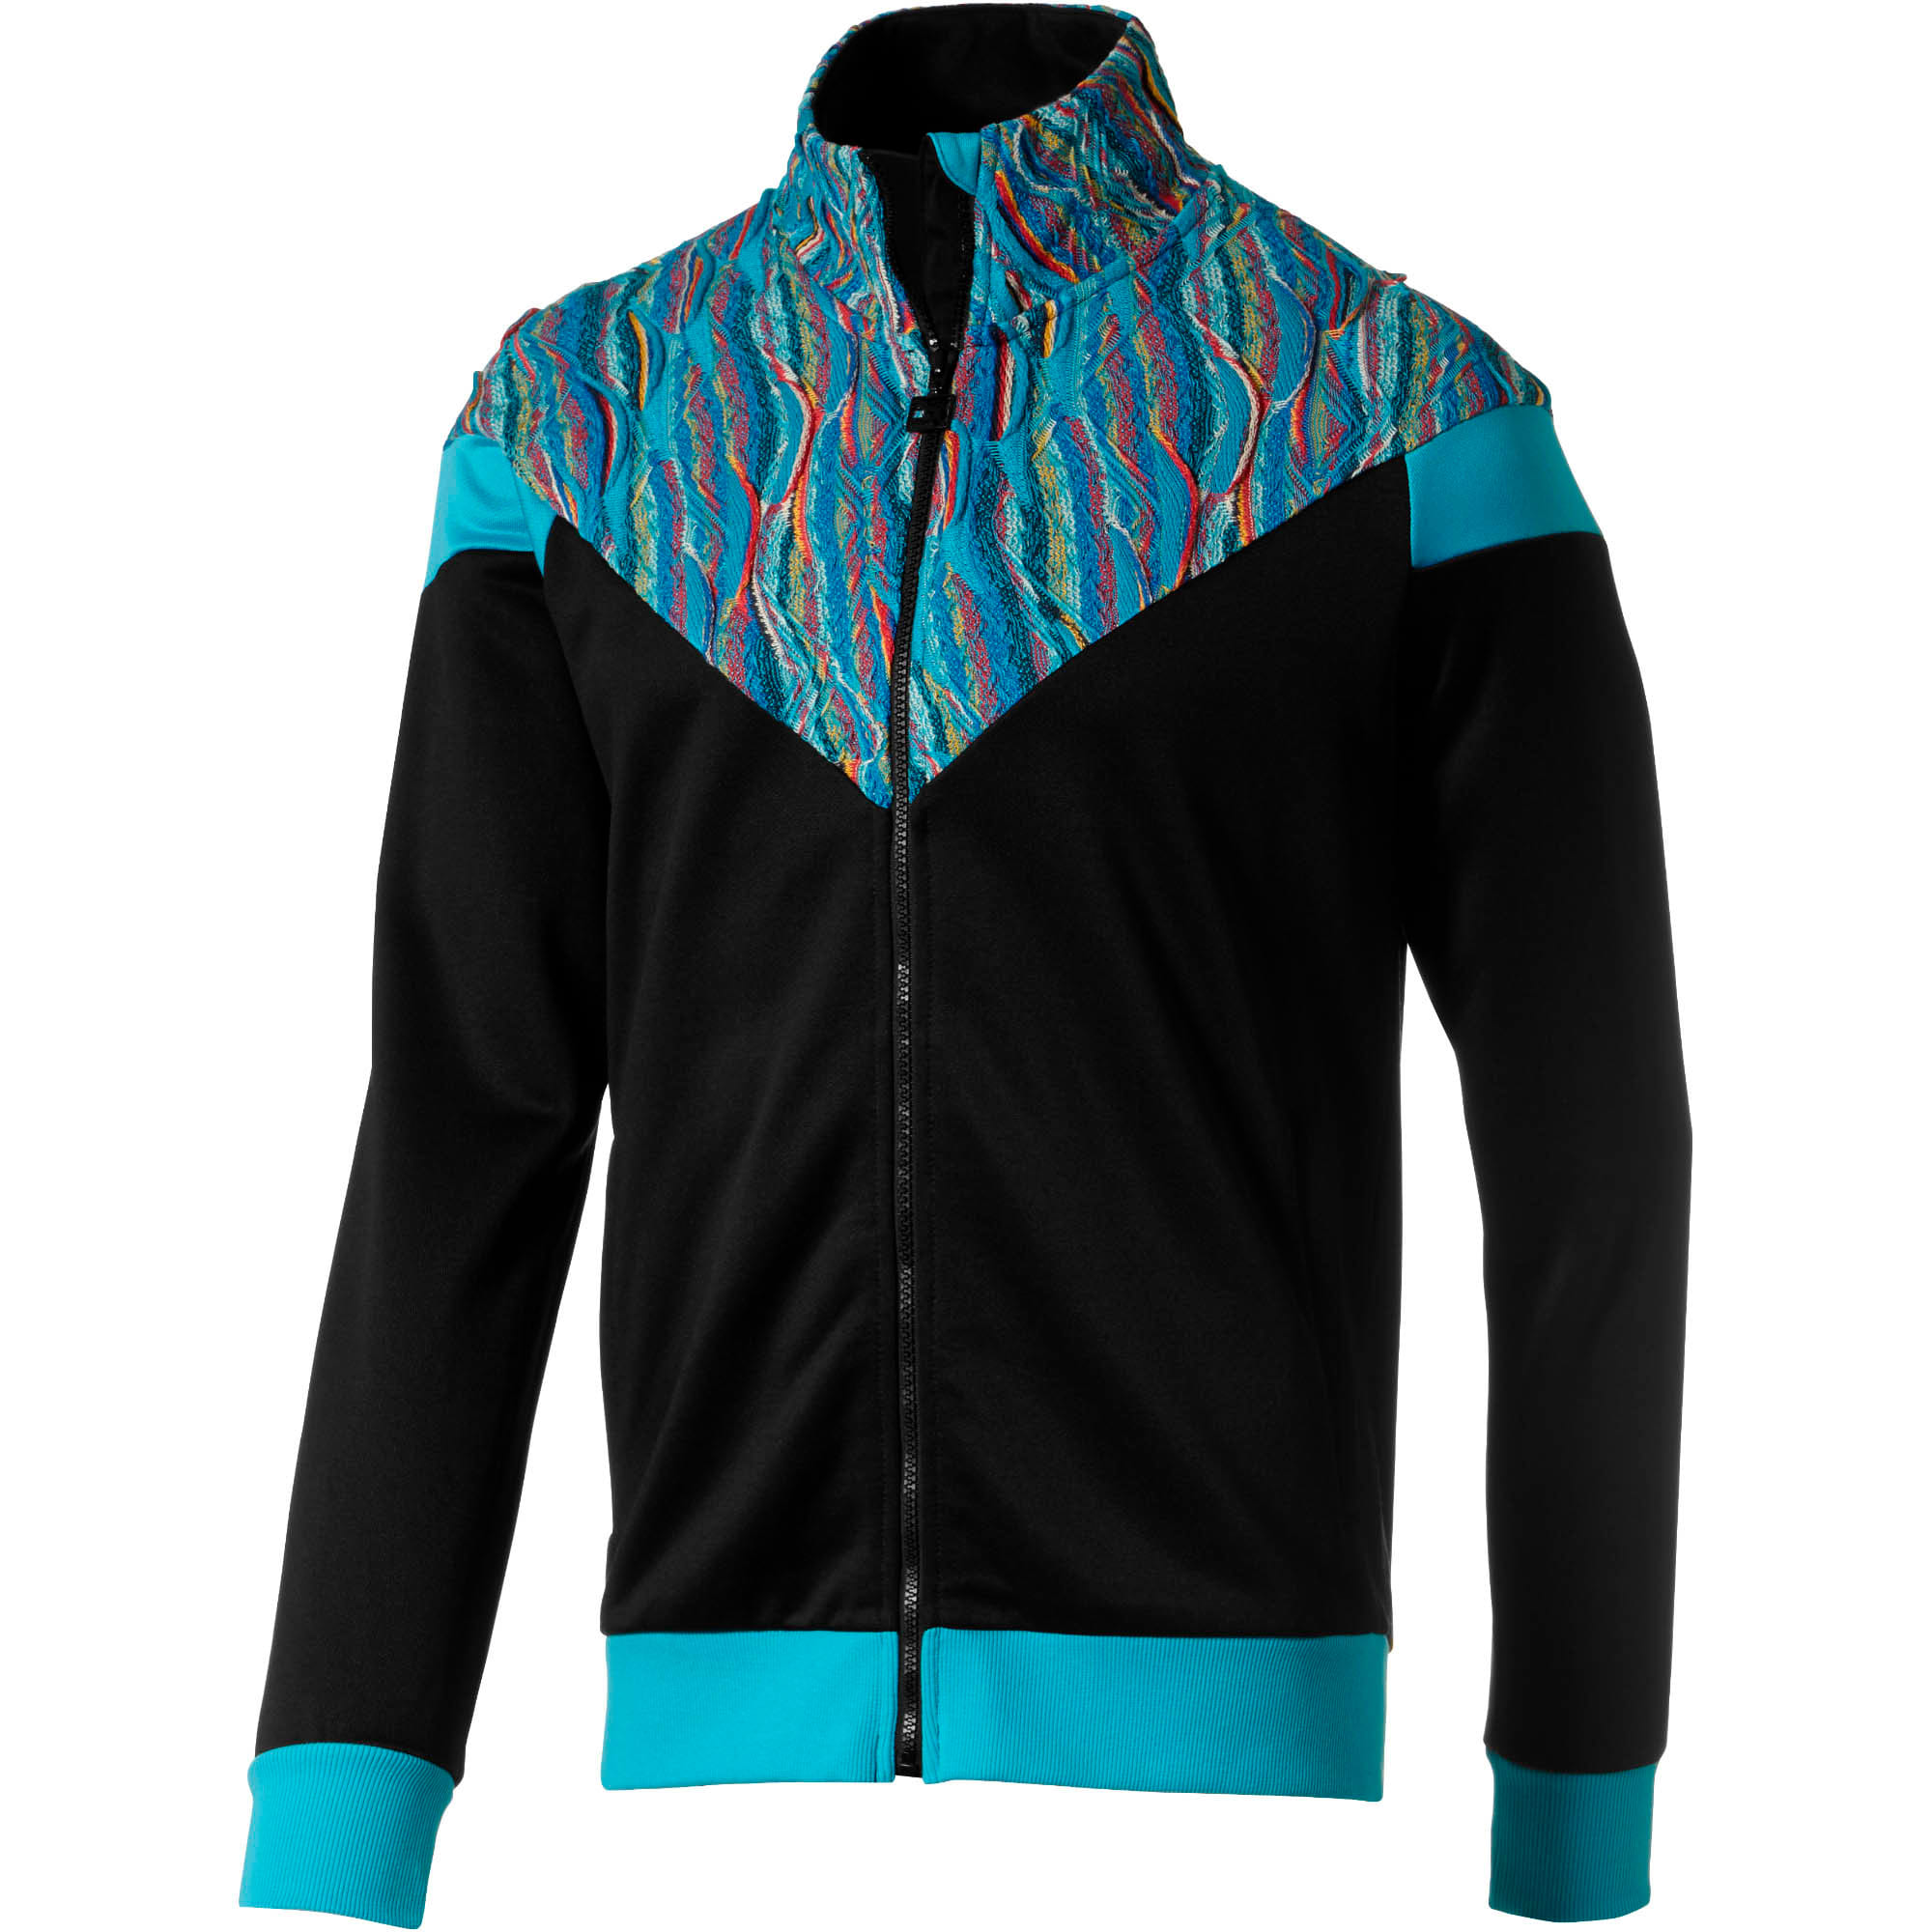 Thumbnail 1 of PUMA x COOGI Men's Track Jacket, Puma Black-Blue Atoll, medium